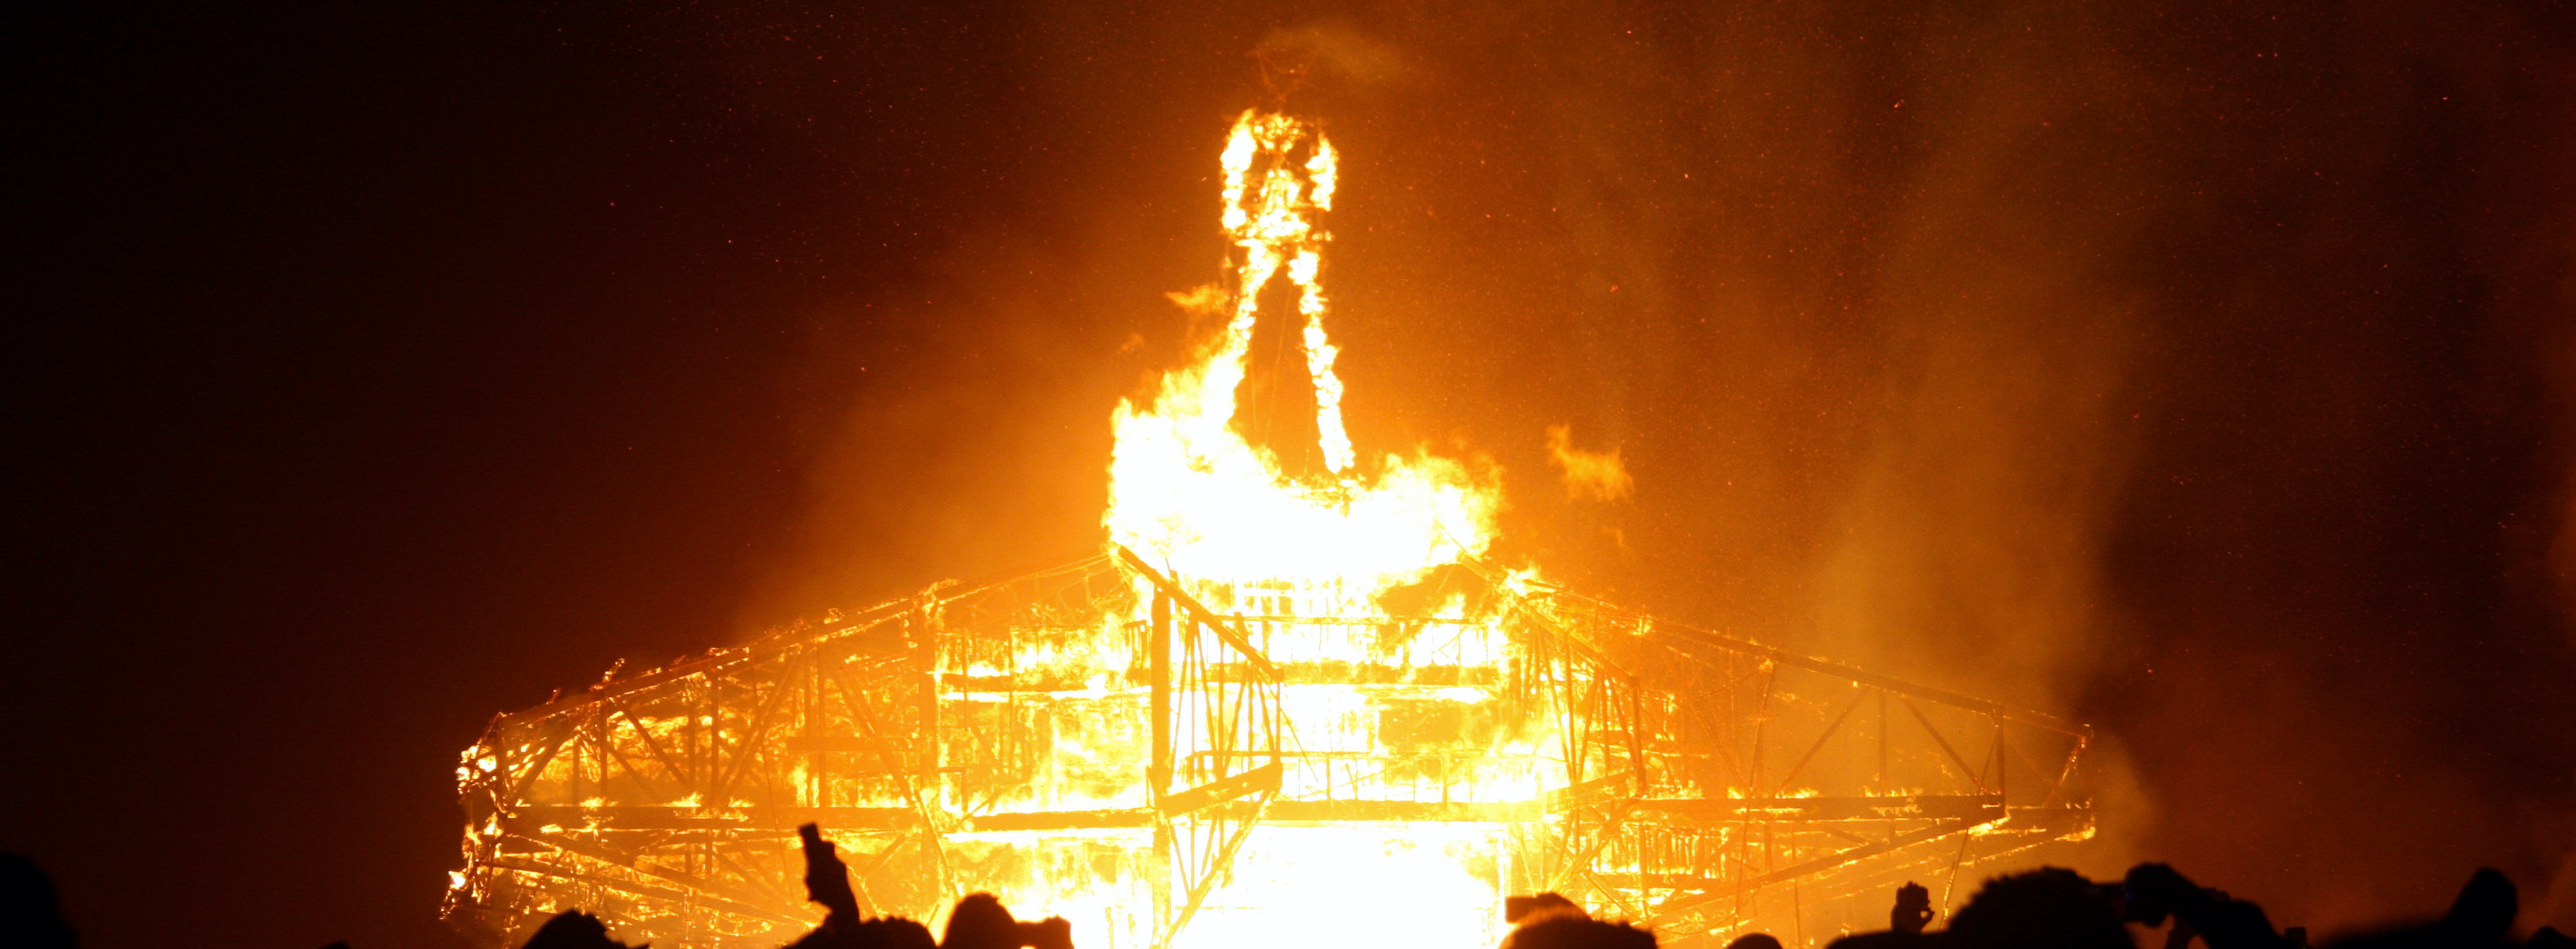 Burning Man festival sues Department of Interior over release of financial records